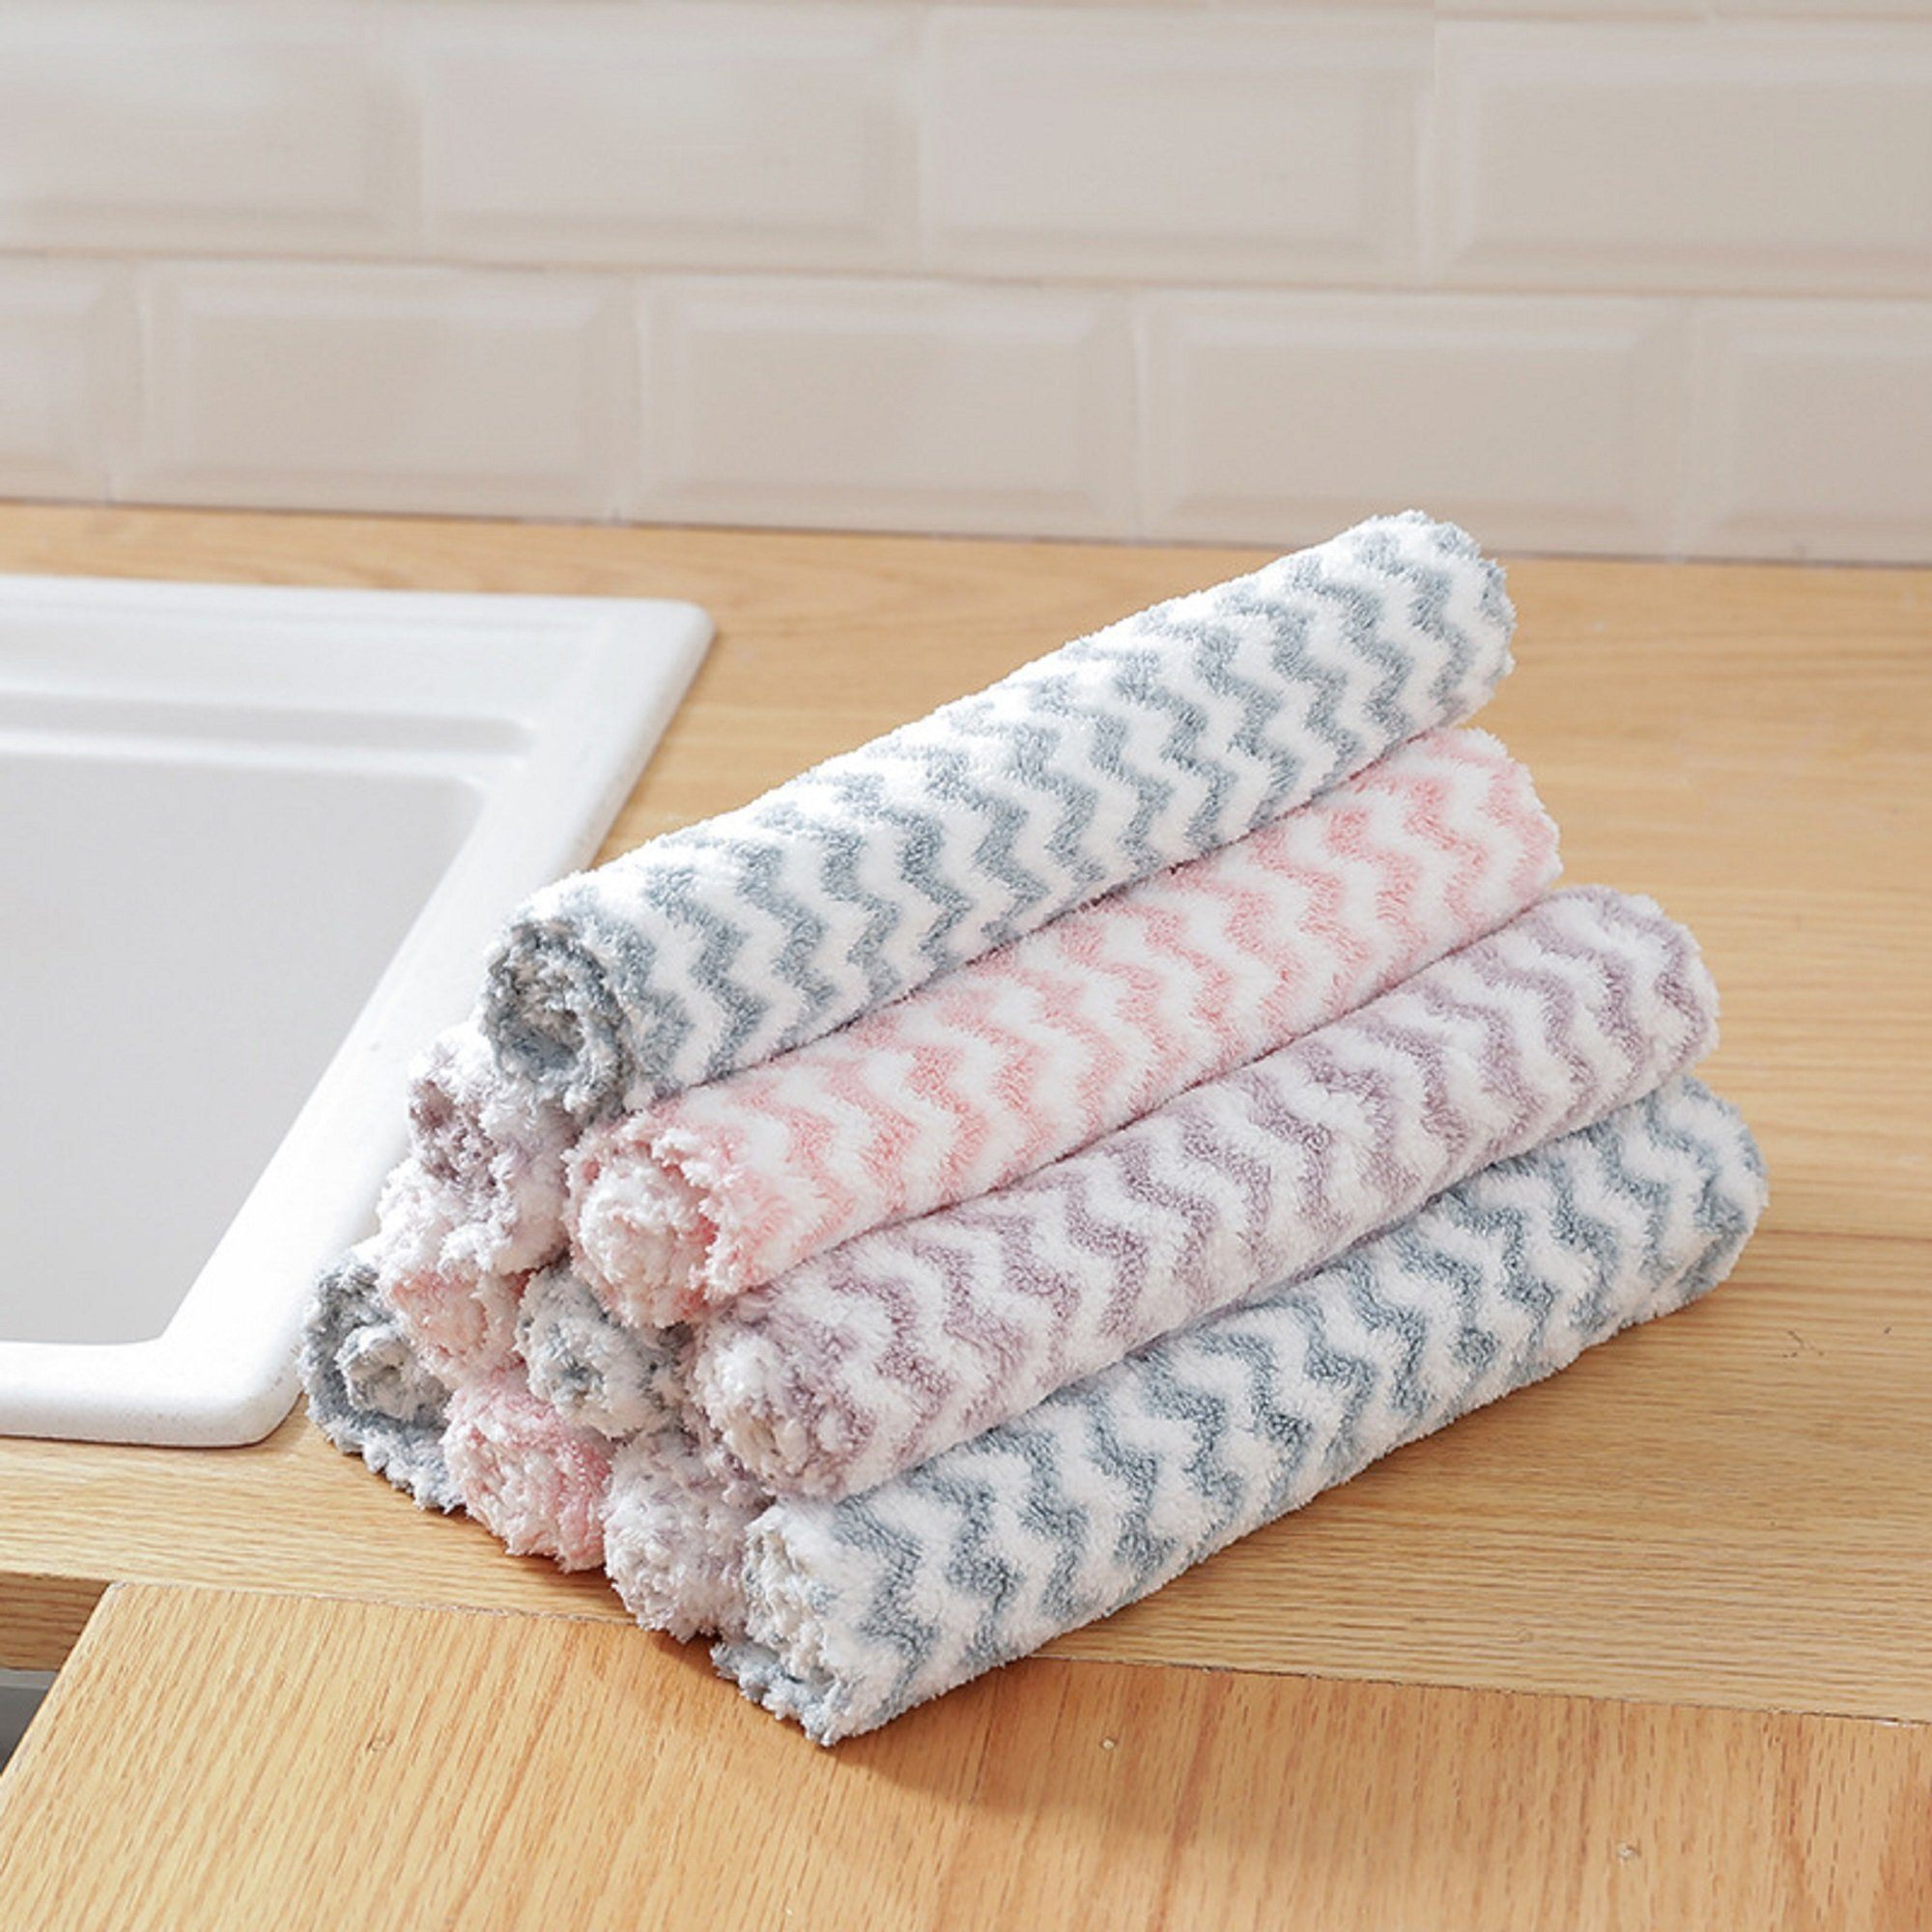 Water-Absorbent Anti-Oil Towel - Set For 10